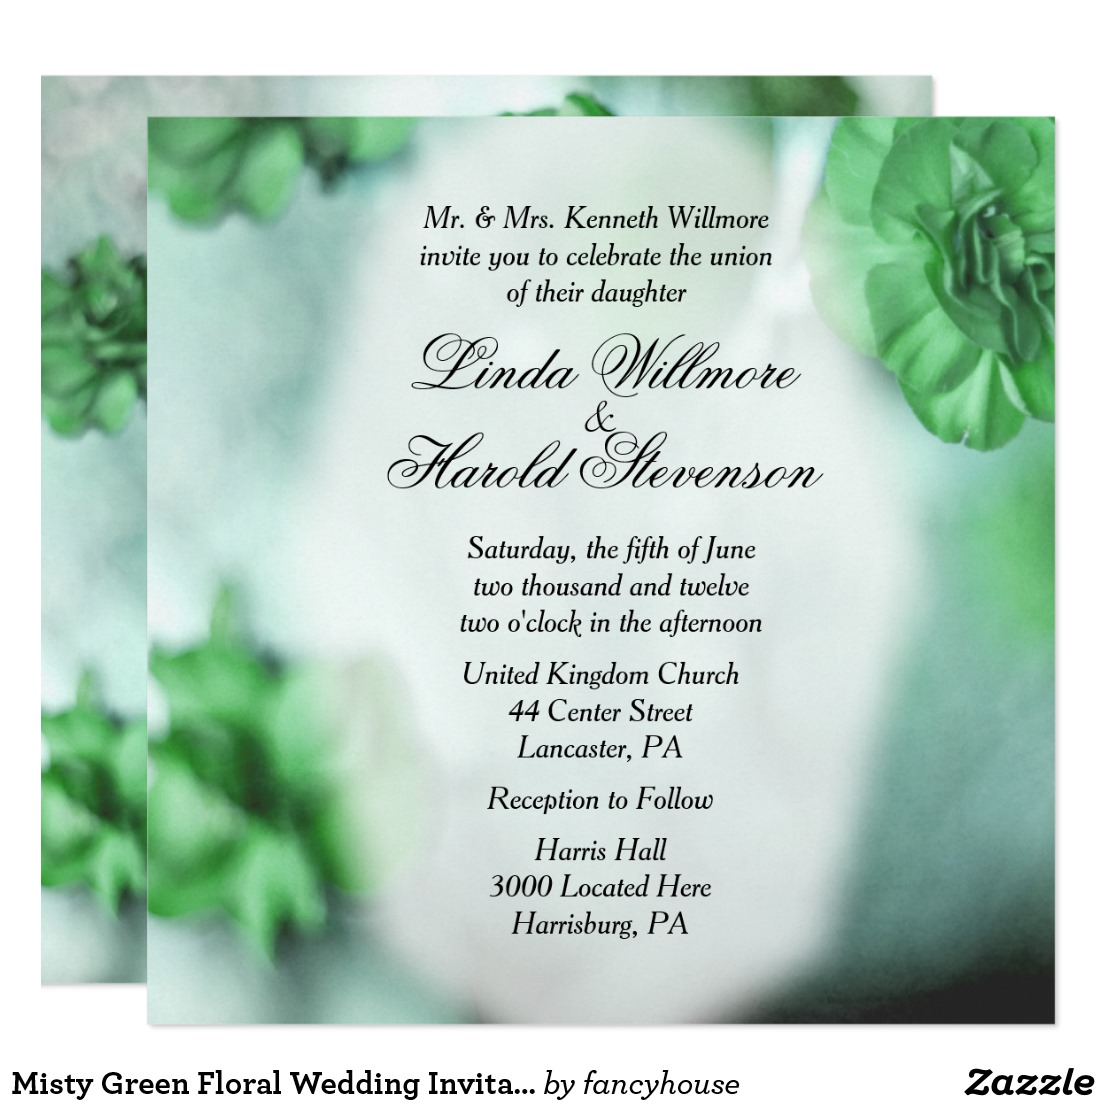 Misty Green Floral Wedding Invitations